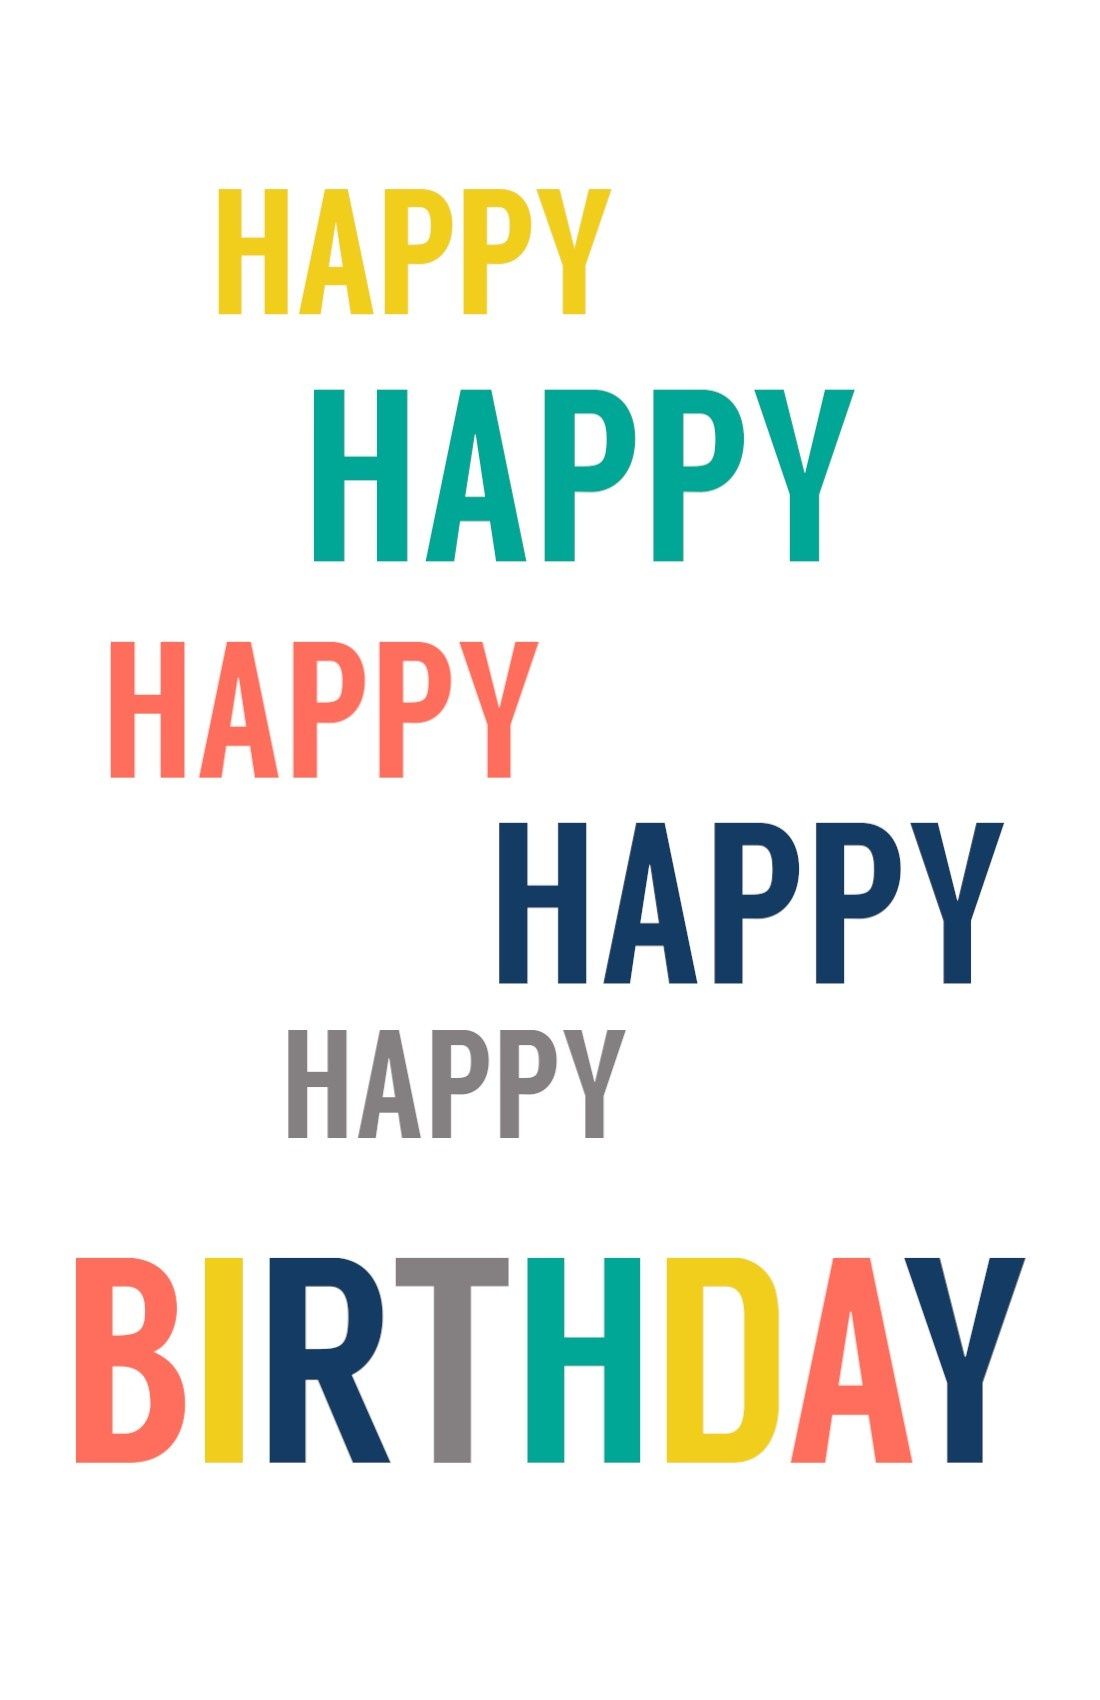 Free Printable Birthday Cards - Paper Trail Design - Free Printable Bday Cards